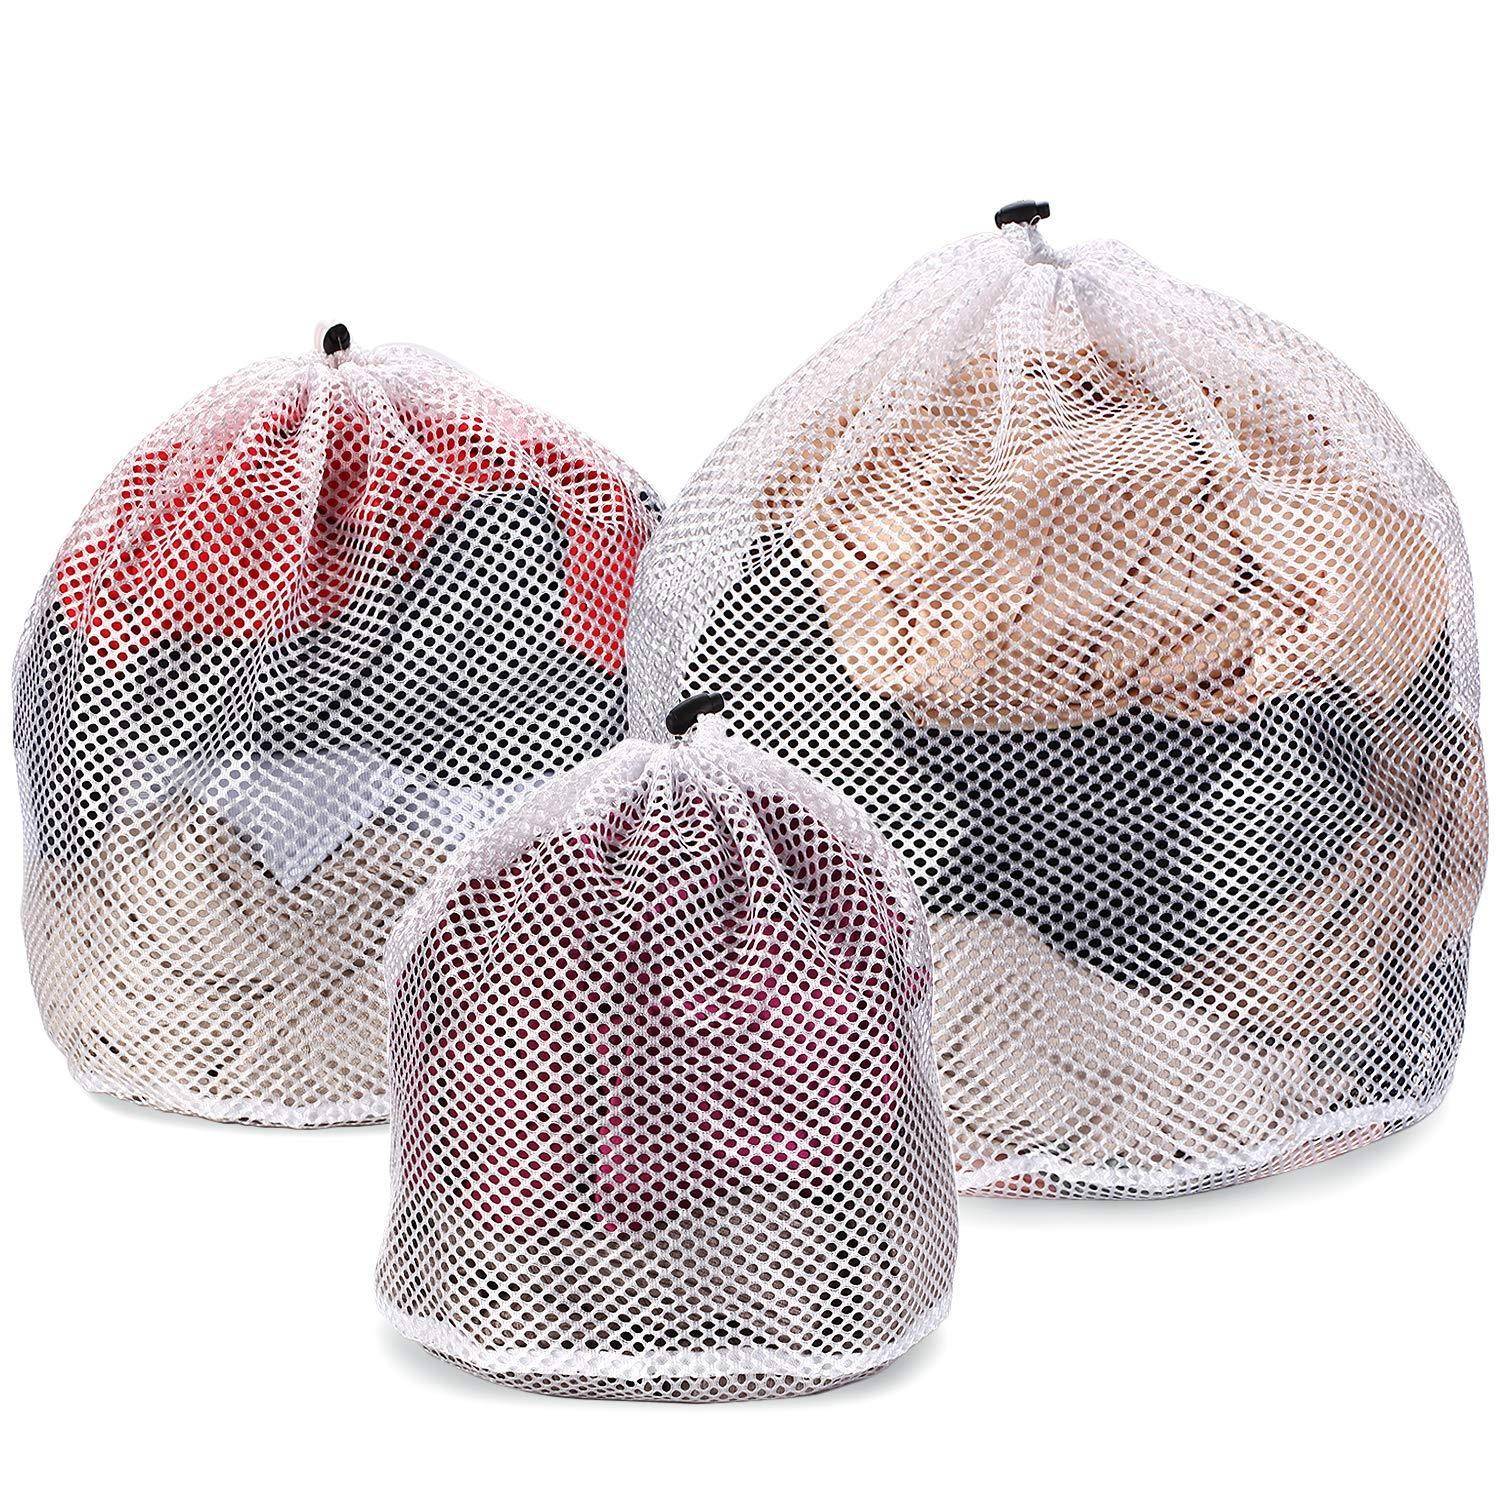 Ovee Lando Drawstring Lingerie Laundry Wash bags Set for Delicates, Garments, Blouse, Sweaters, Bras, and Quilts, Set of 3, Include 3 different Type of size